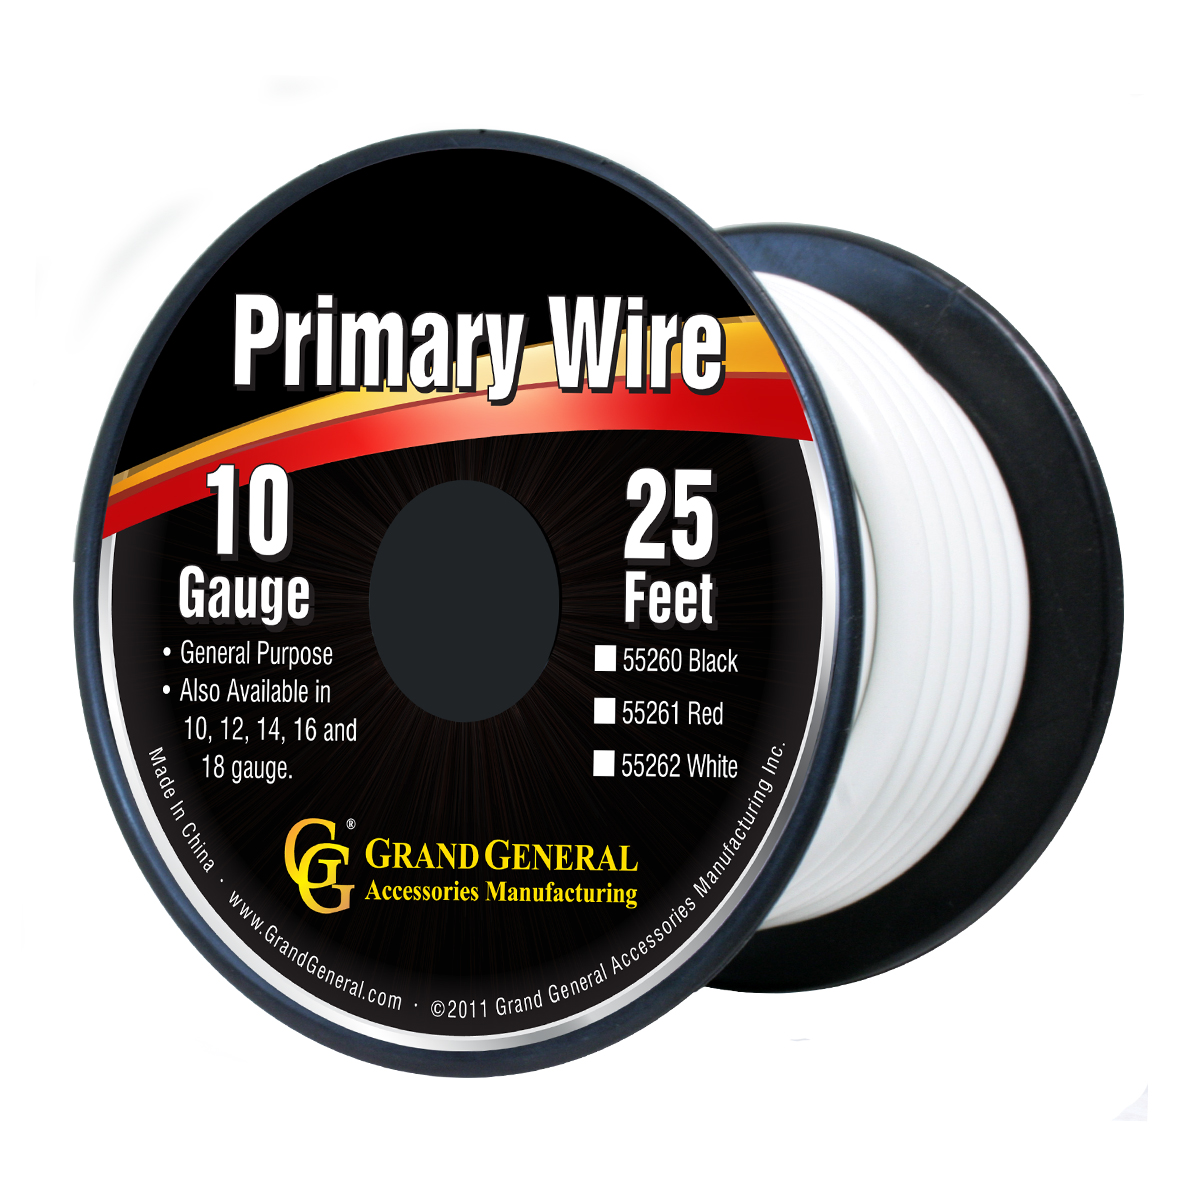 55262/55262SP Primary Wire in 10 Gauge, 25 Feet